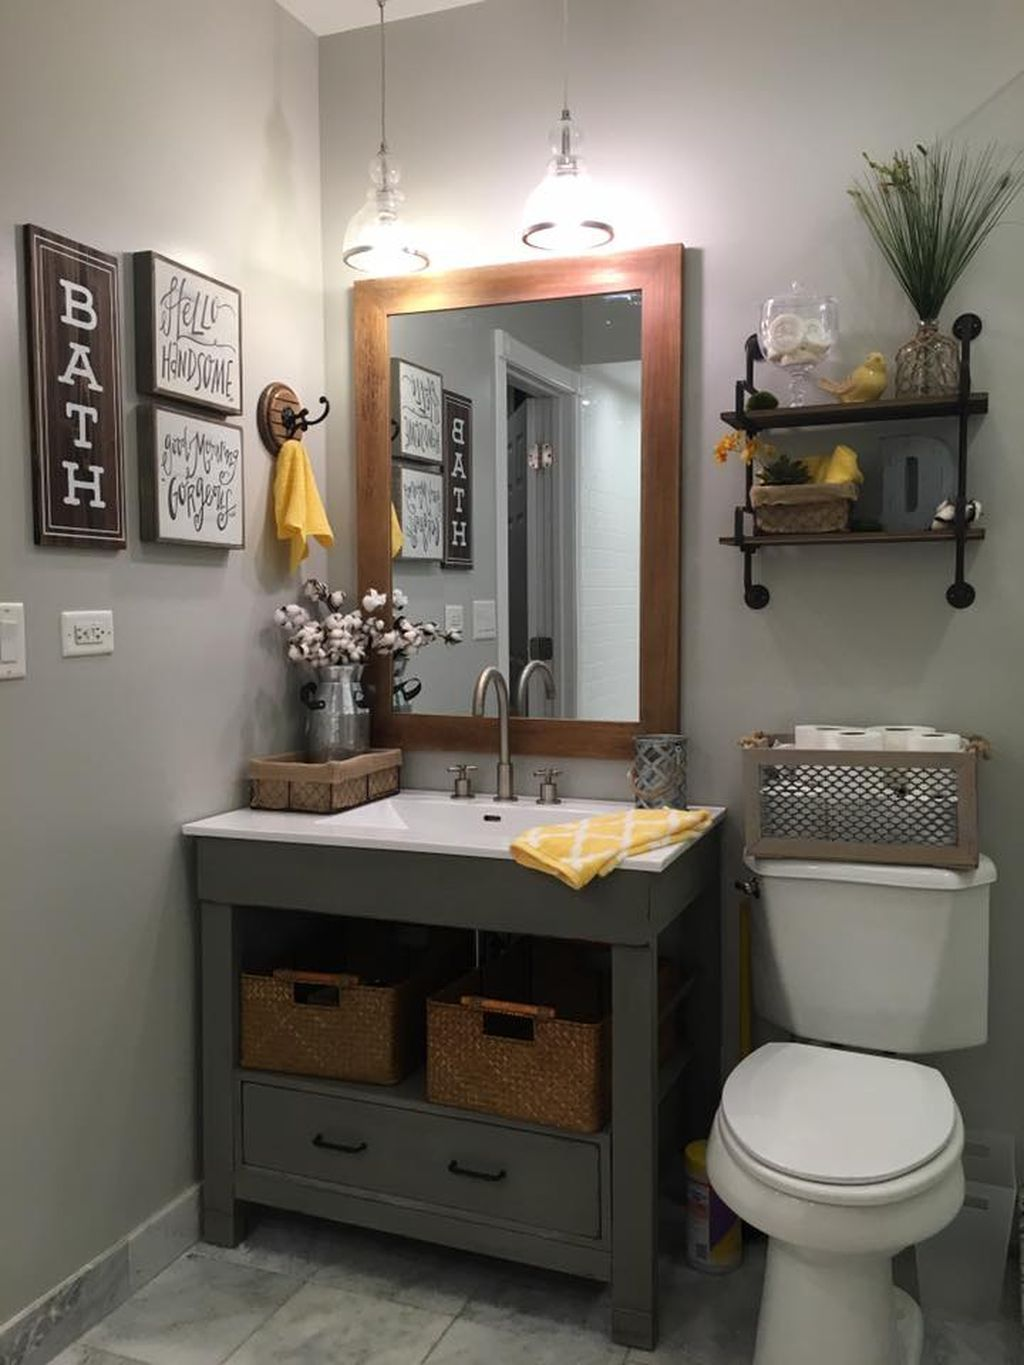 Providing Your Small Bathroom A Remodeling Could Seem Fun And Amazing Nevertheless Work Could End Up Being Twice As Difficul With Images Bathroom Vanity Makeover